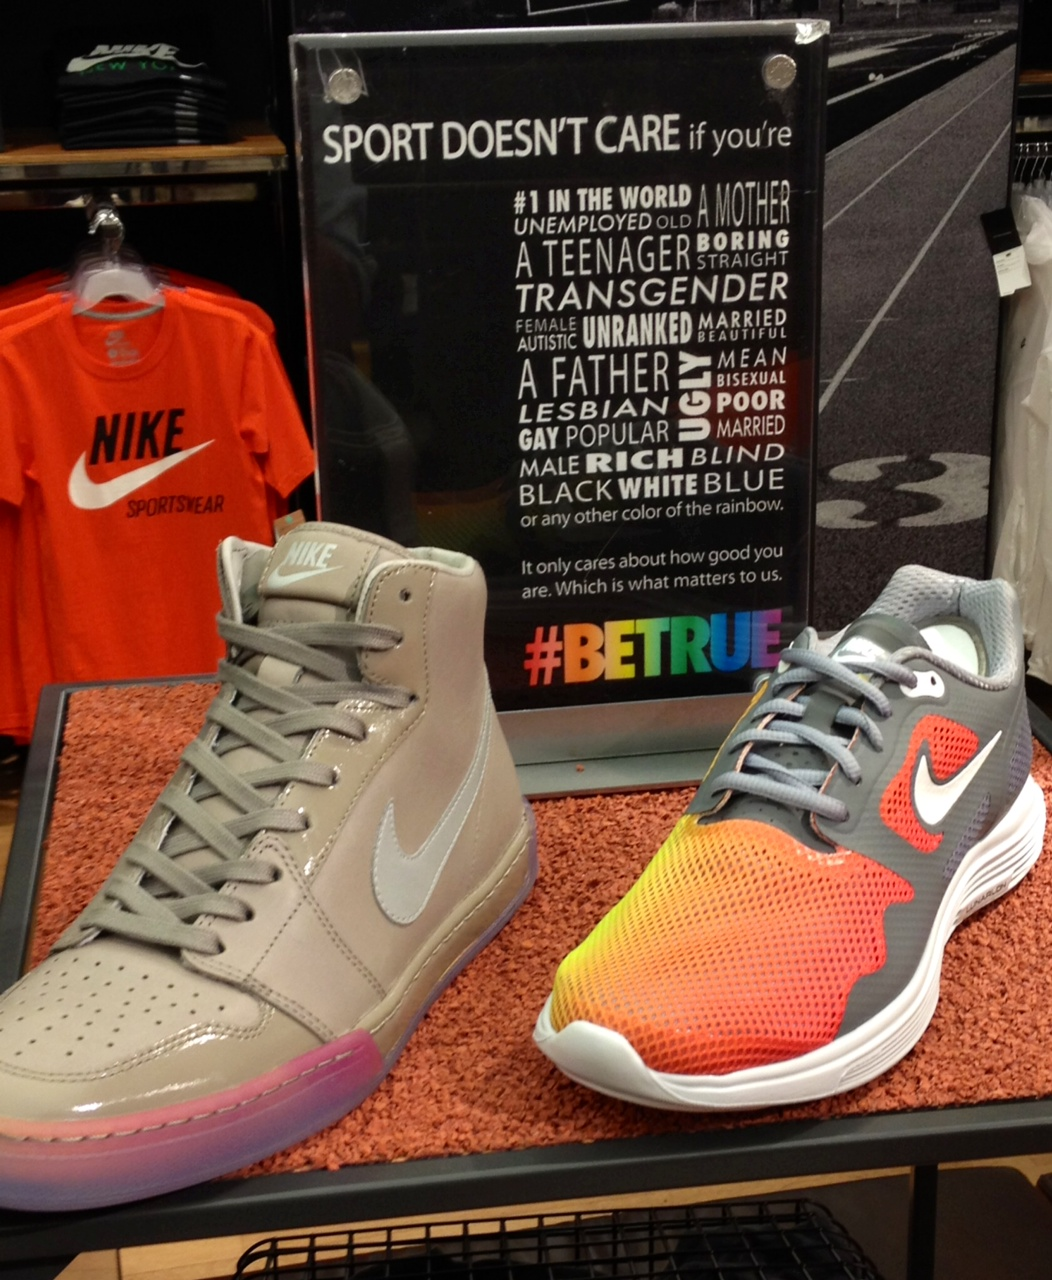 The 2014 Nike #BETRUE collection extends beyond that small set of sneakers and apparel that already made their way to retail. Also included in the group is